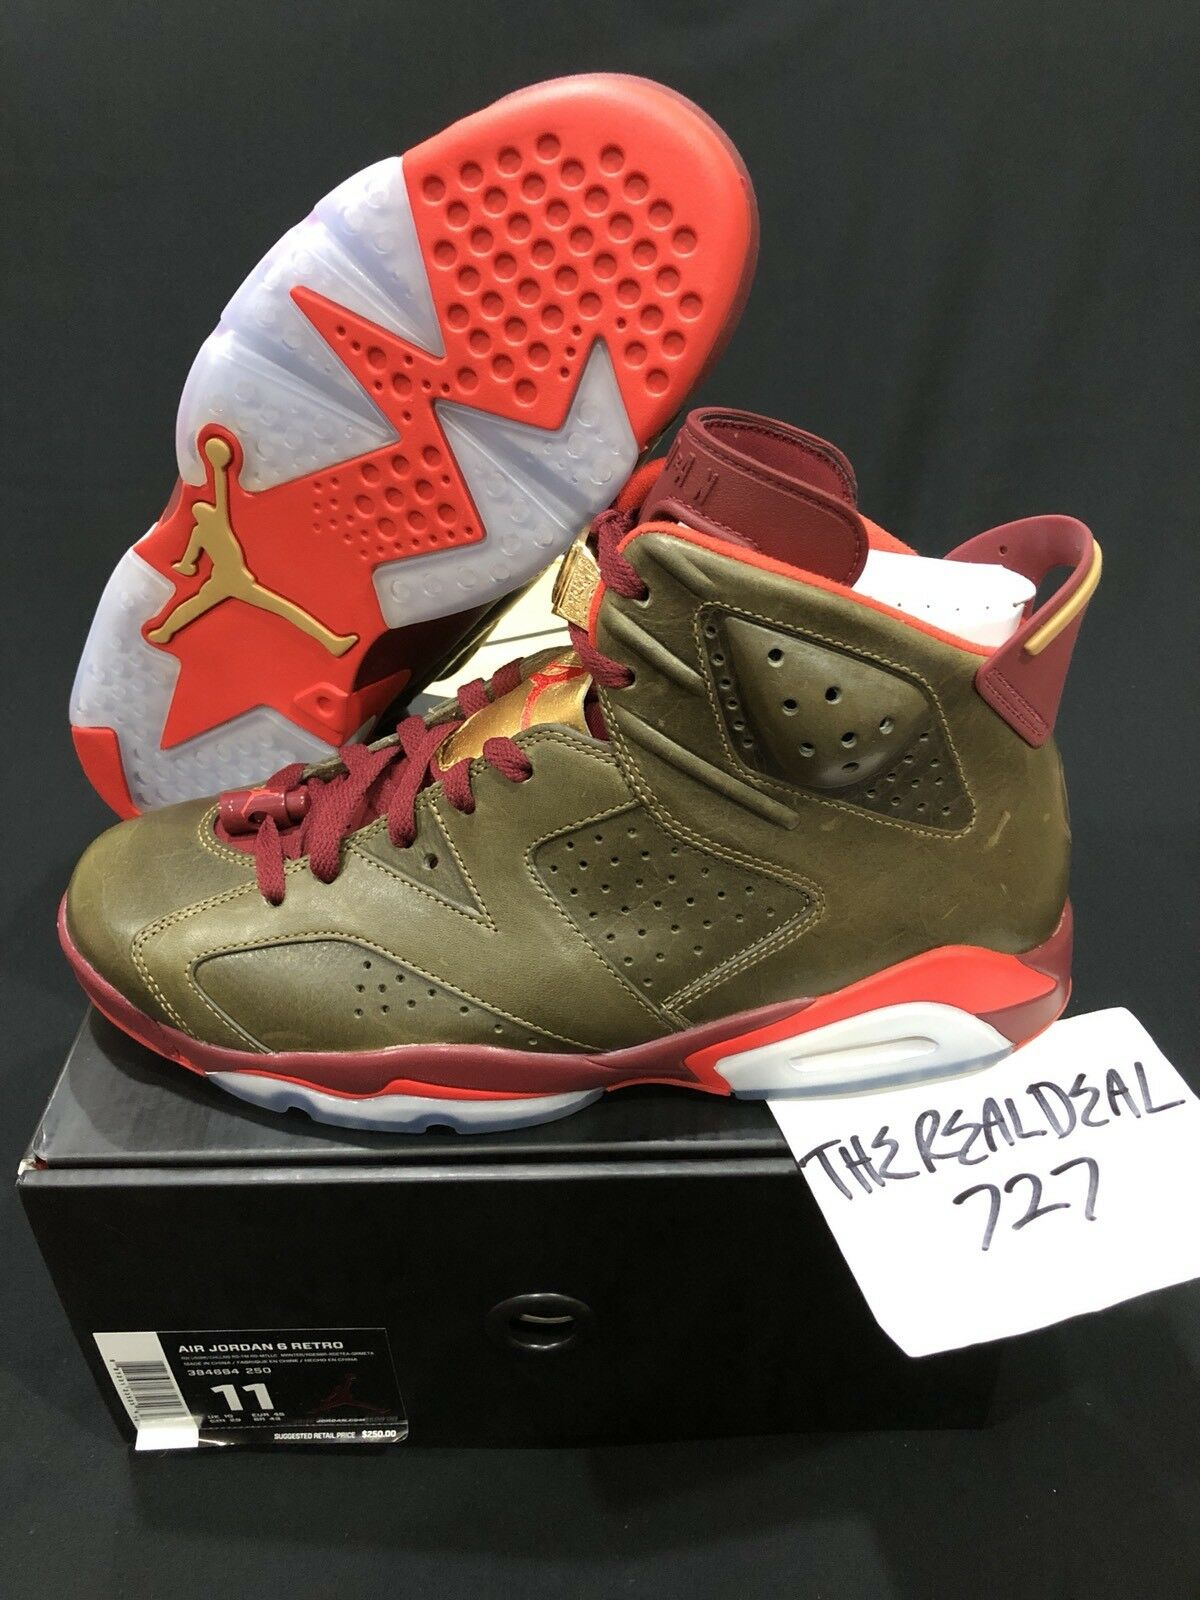 AIR JORDAN 6 RETRO  CIGAR  - ITEM NUMBER 1532-11 - STYLE 384664 250